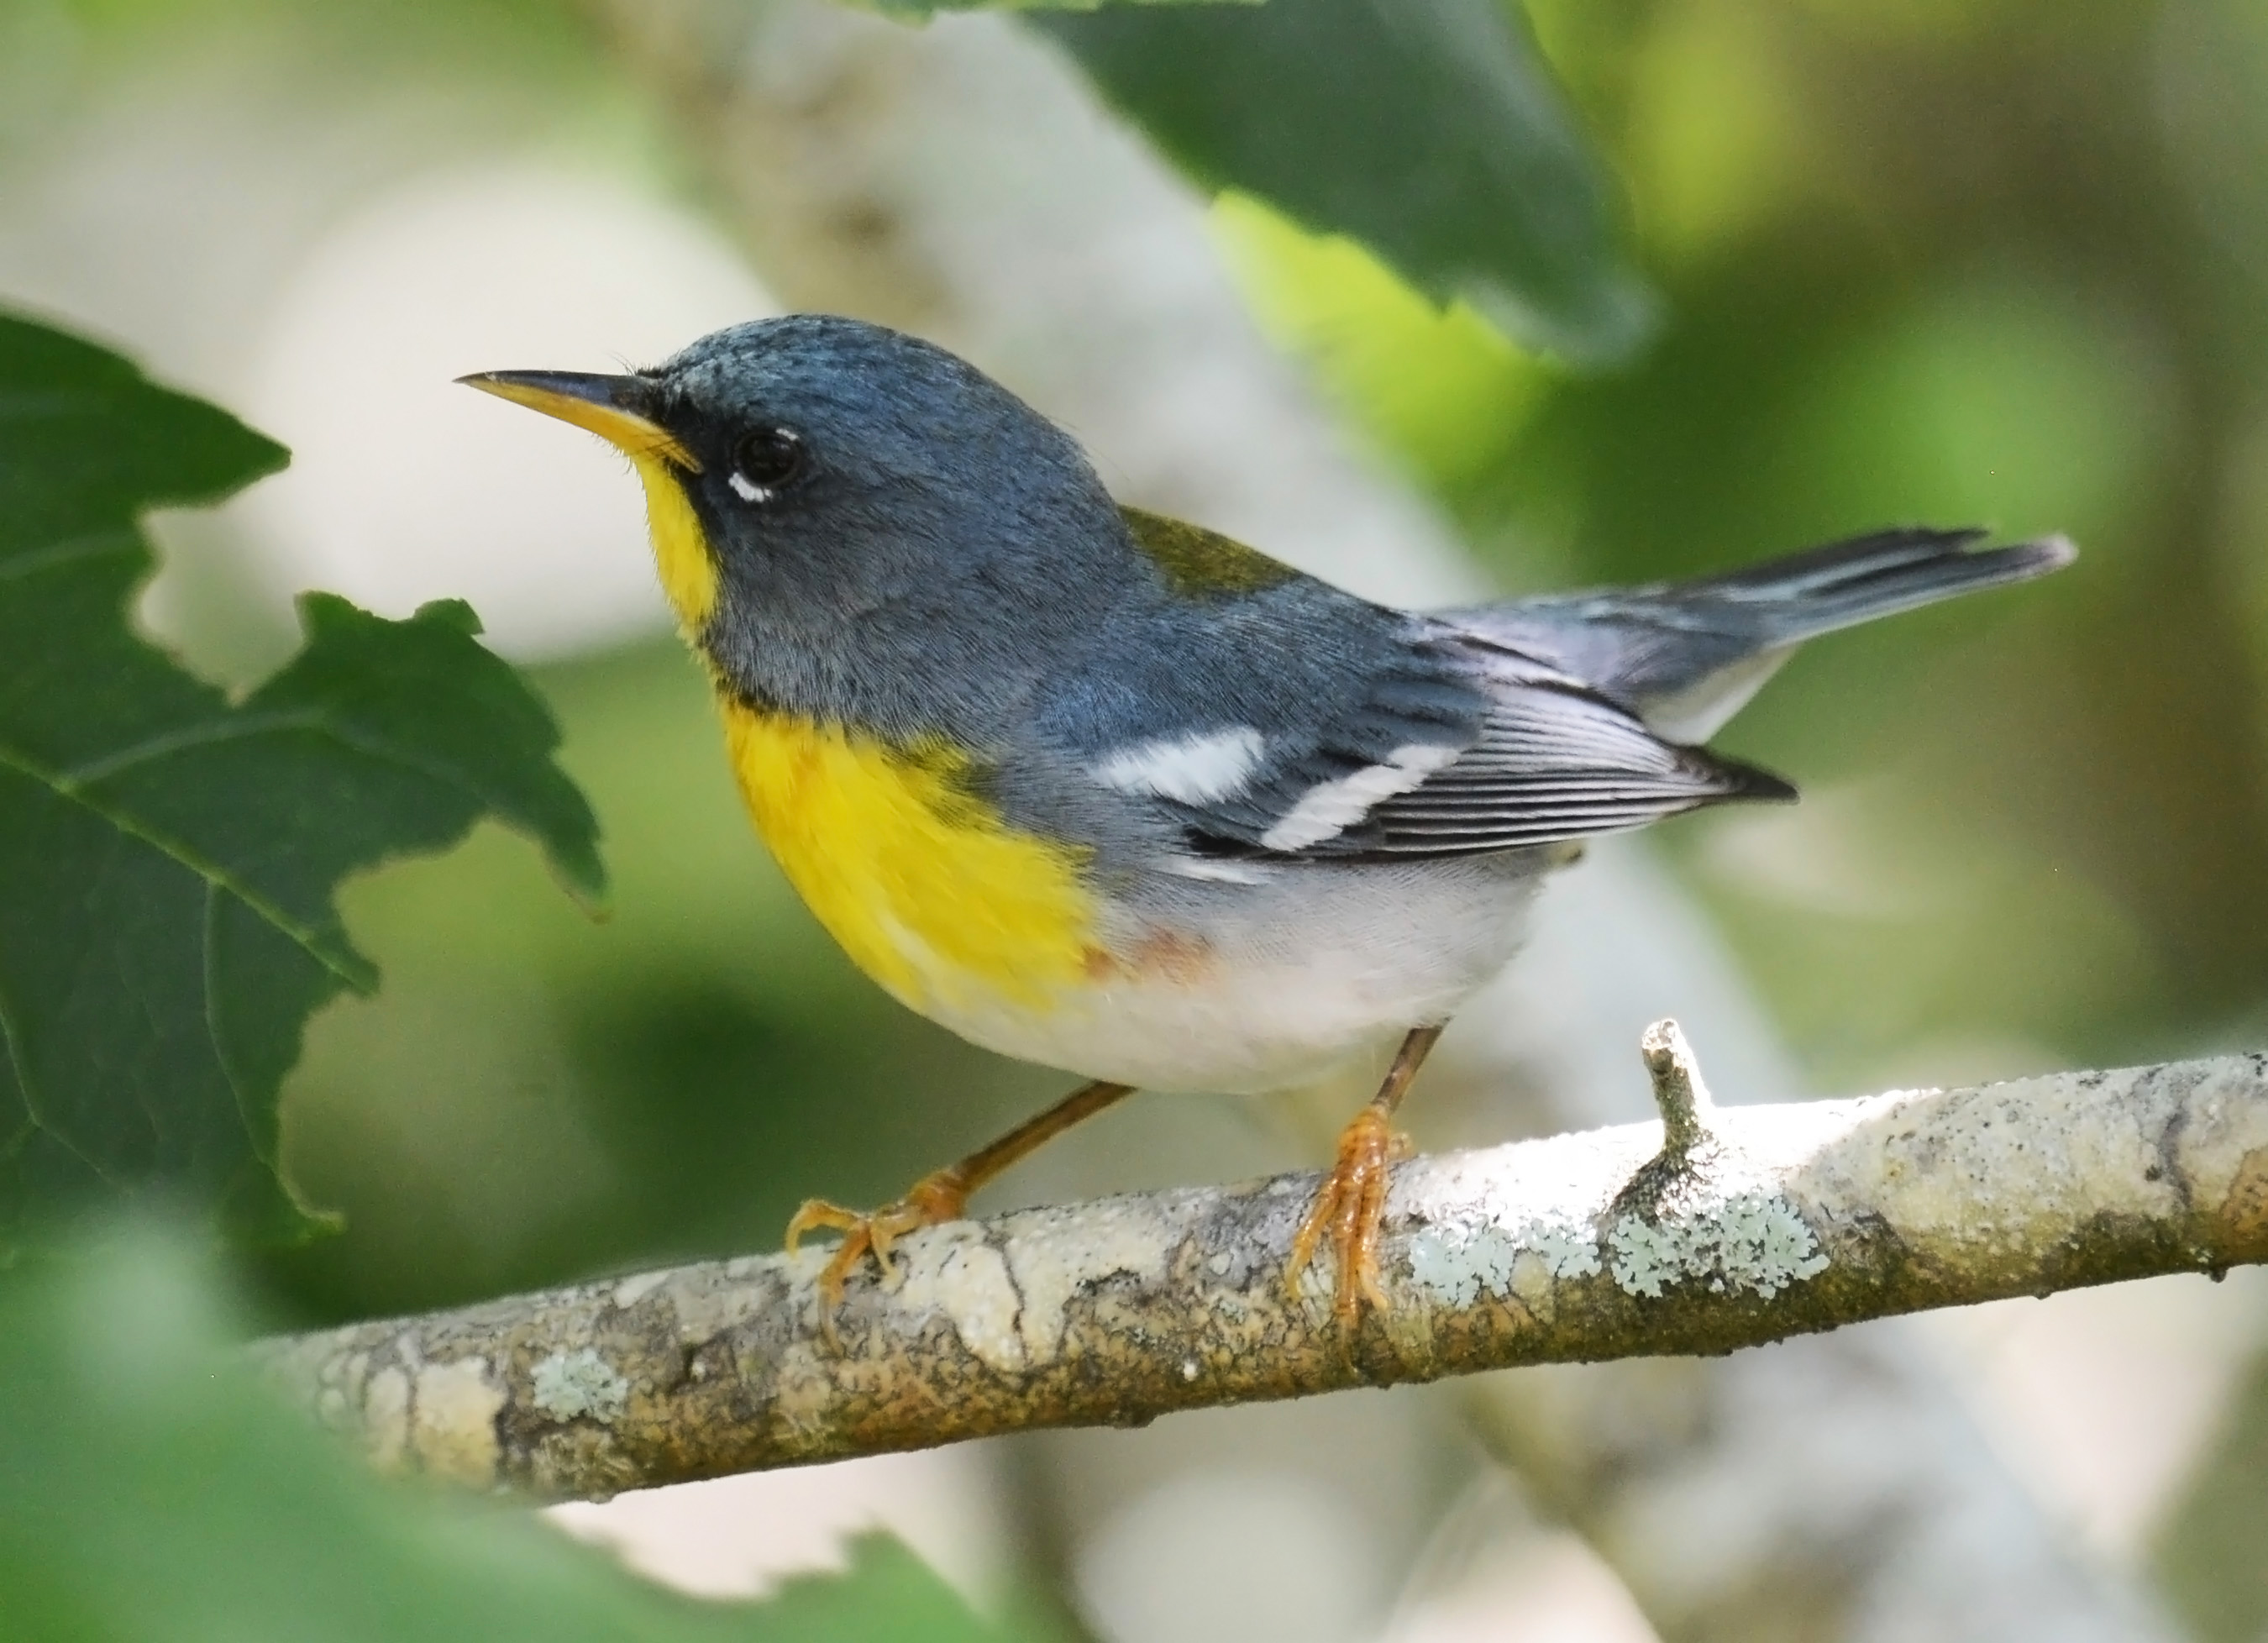 The bluish gray Northern Parula bird has a yellow belly.